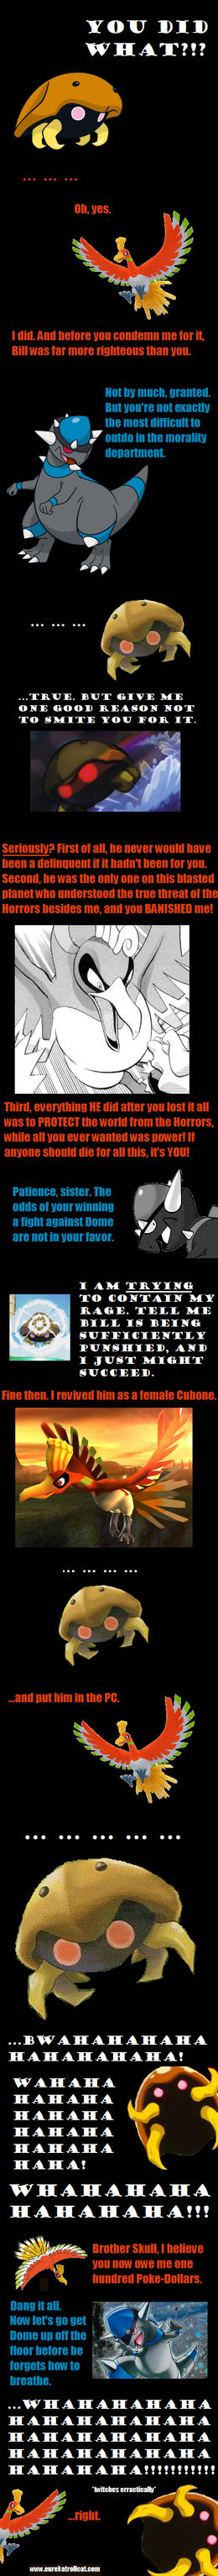 Ho-Oh Sanctioned Shenanigans: Dome Gets The News